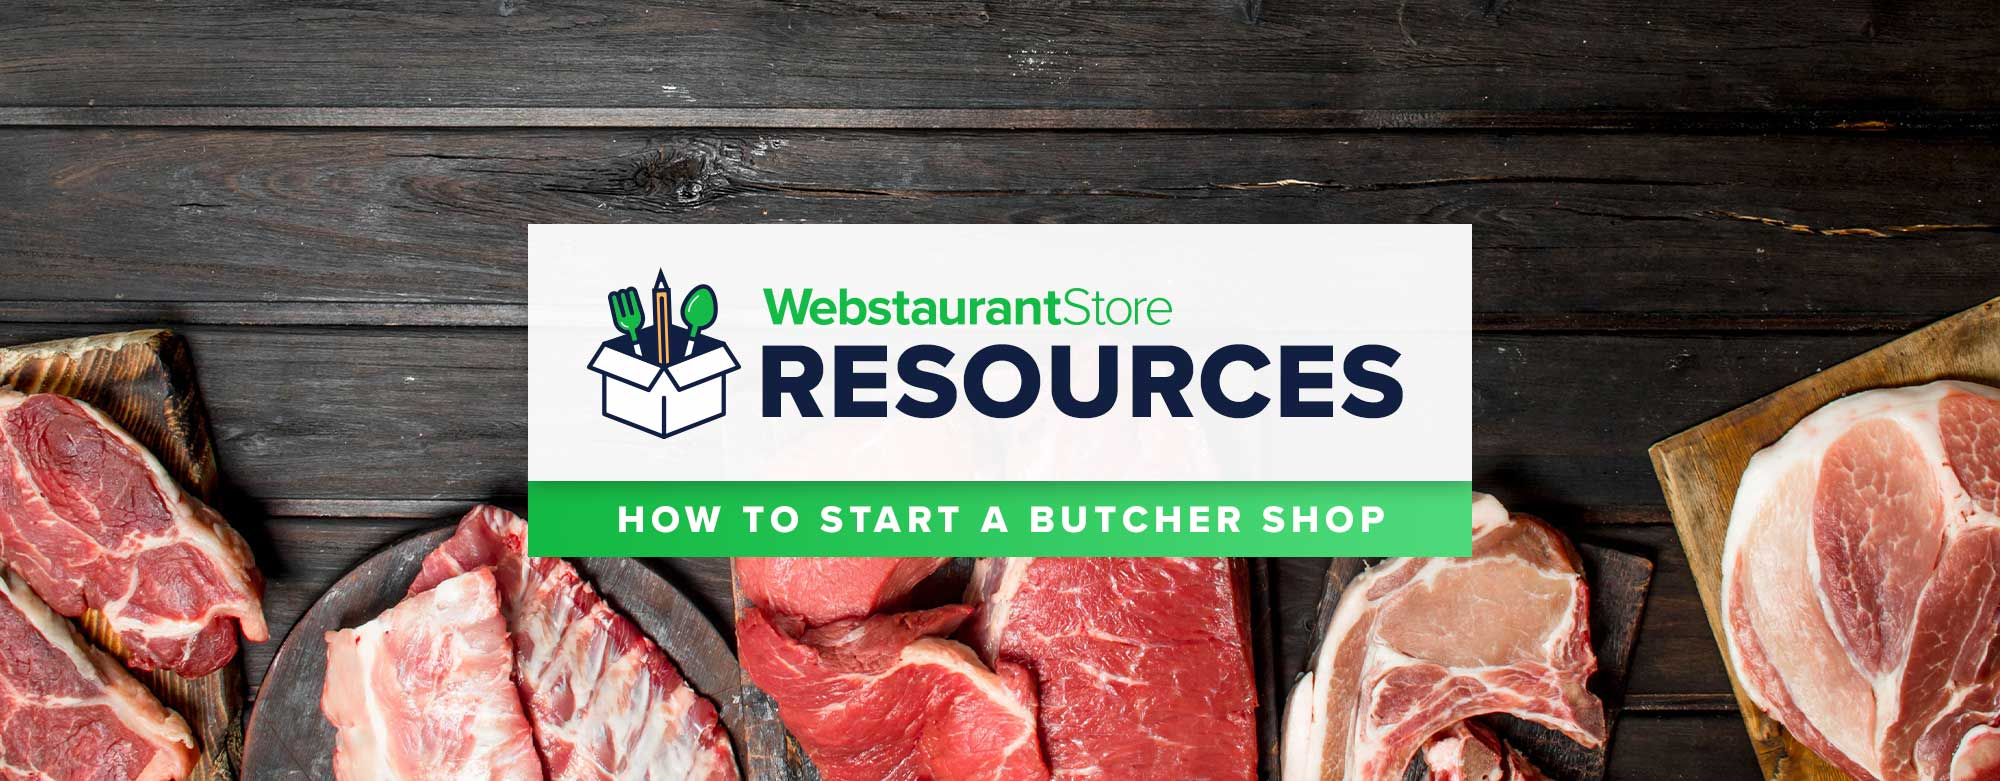 How to Start a Butcher Shop